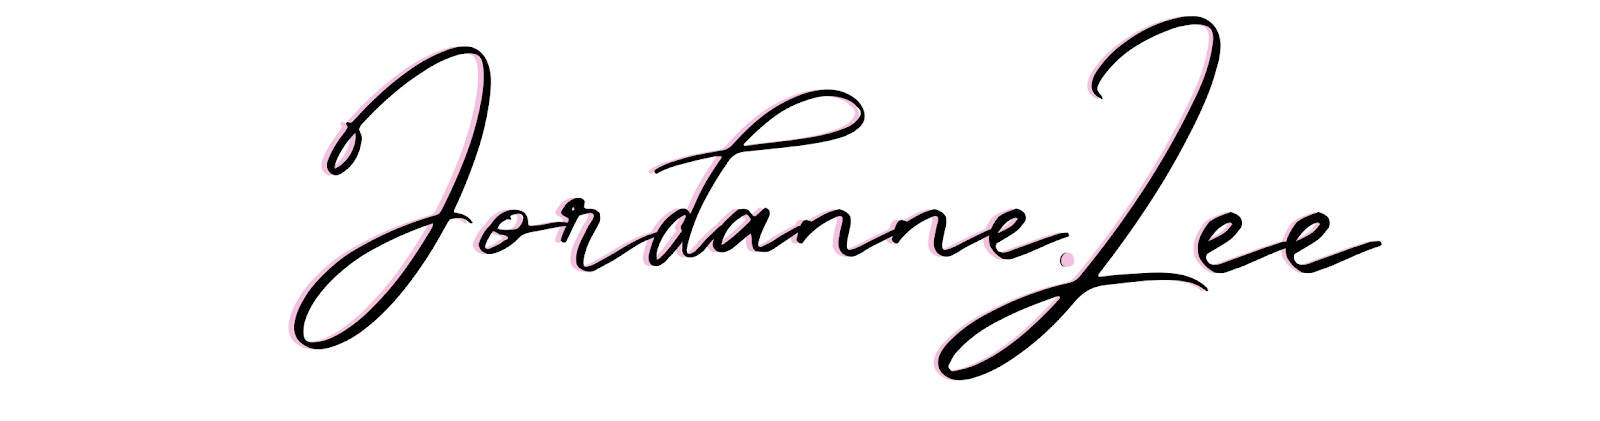 "Blog headers for new blog - jordanneleecreative.blogspot.co.uk that reads ""Jordanne Lee"""